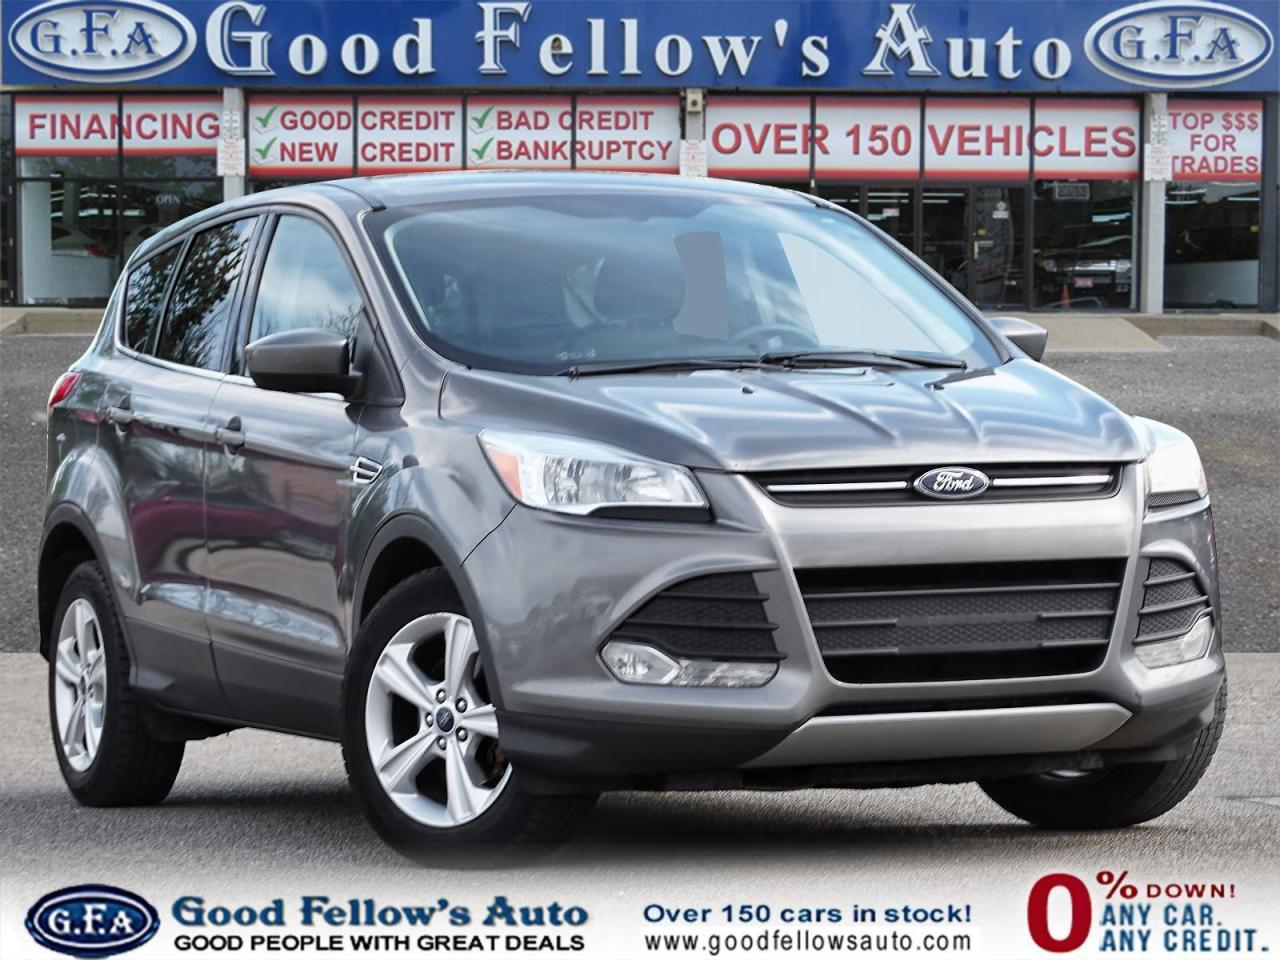 used 2014 Ford Escape car, priced at $8,999